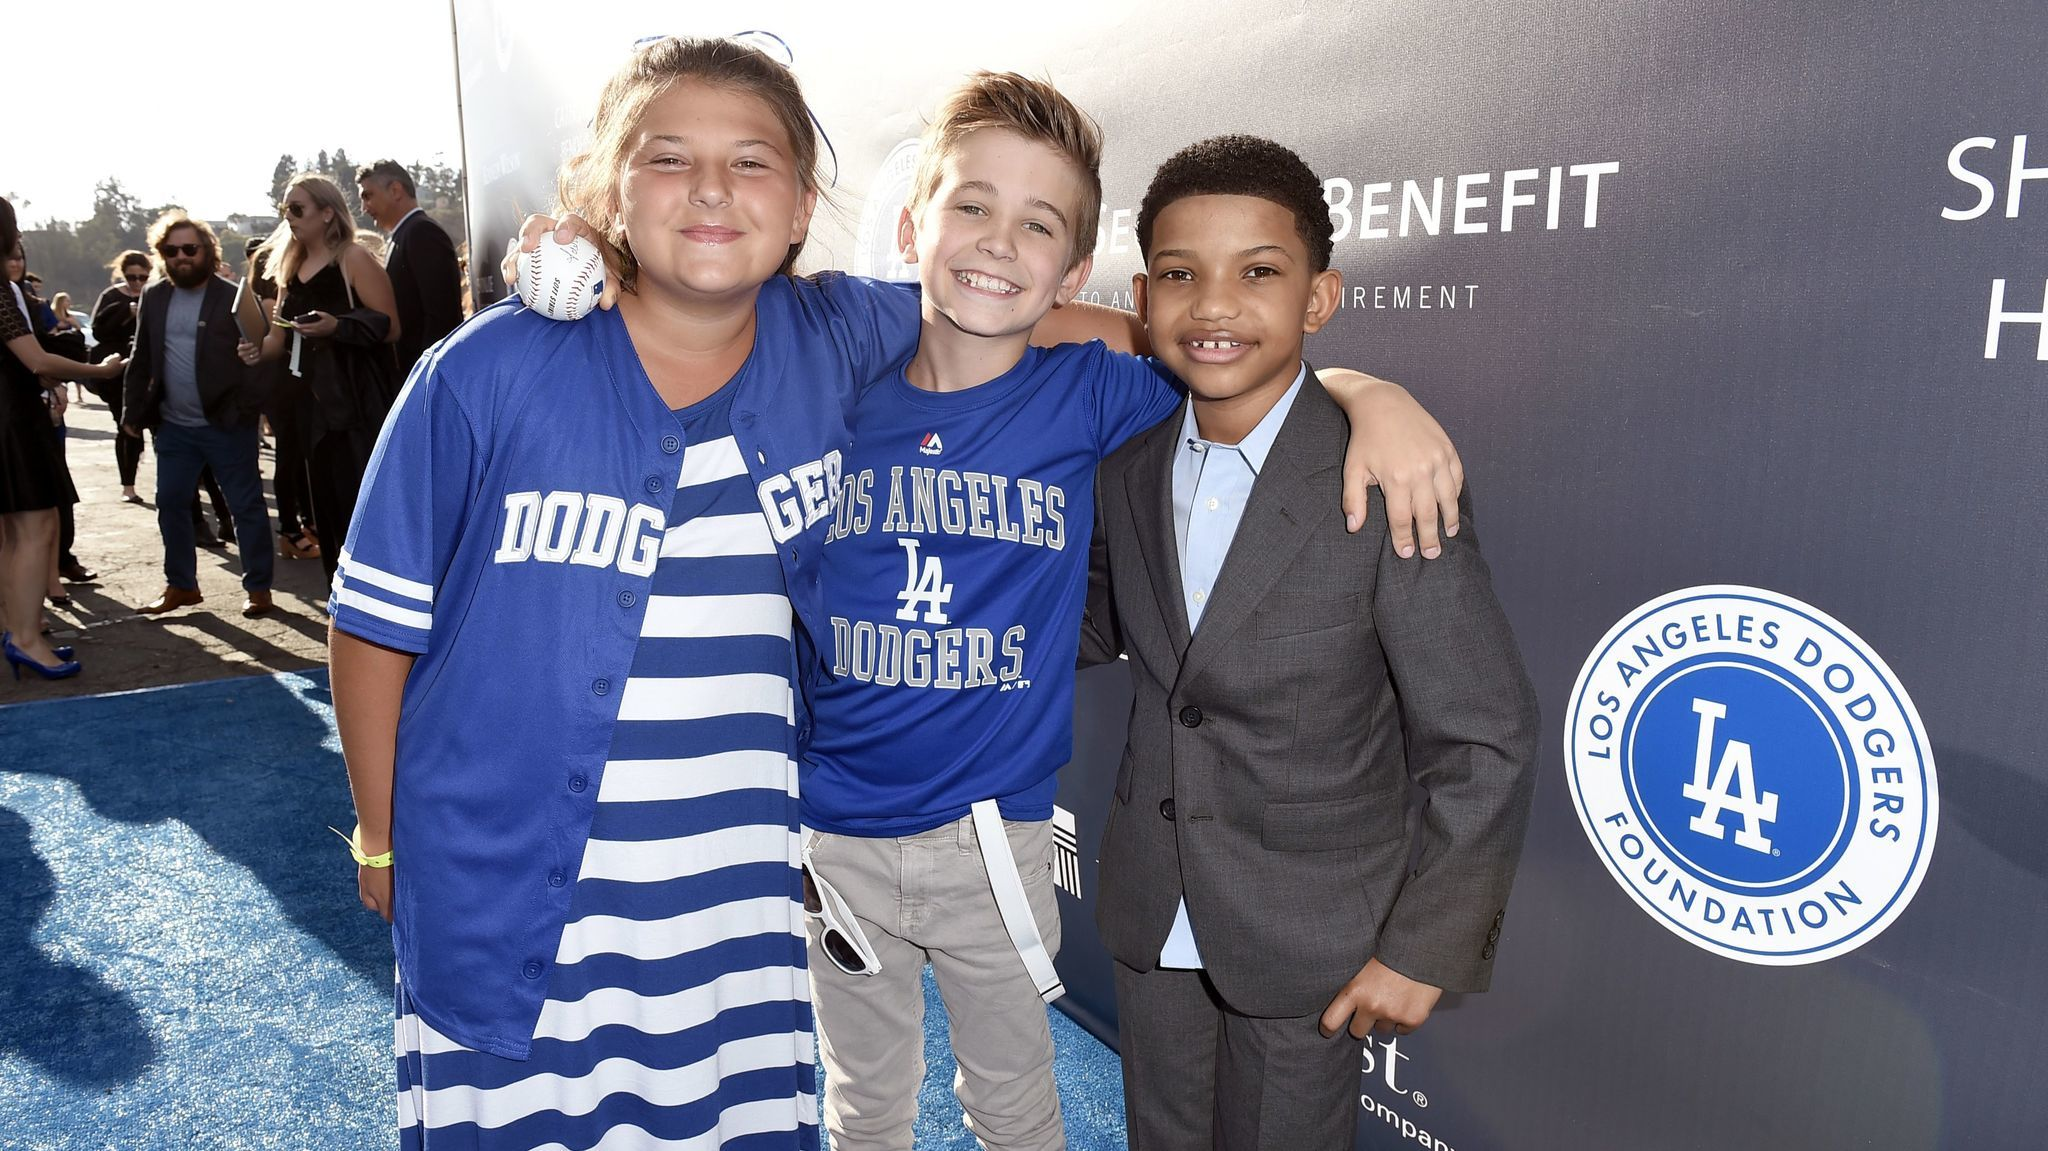 Mackenzie Hancsicsak, left, Parker Bates and Lonnie Chavis arrive at the Los Angeles Dodgers Foundation Blue Diamond Gala 2017 at Dodgers Stadium on Thursday in Los Angeles.